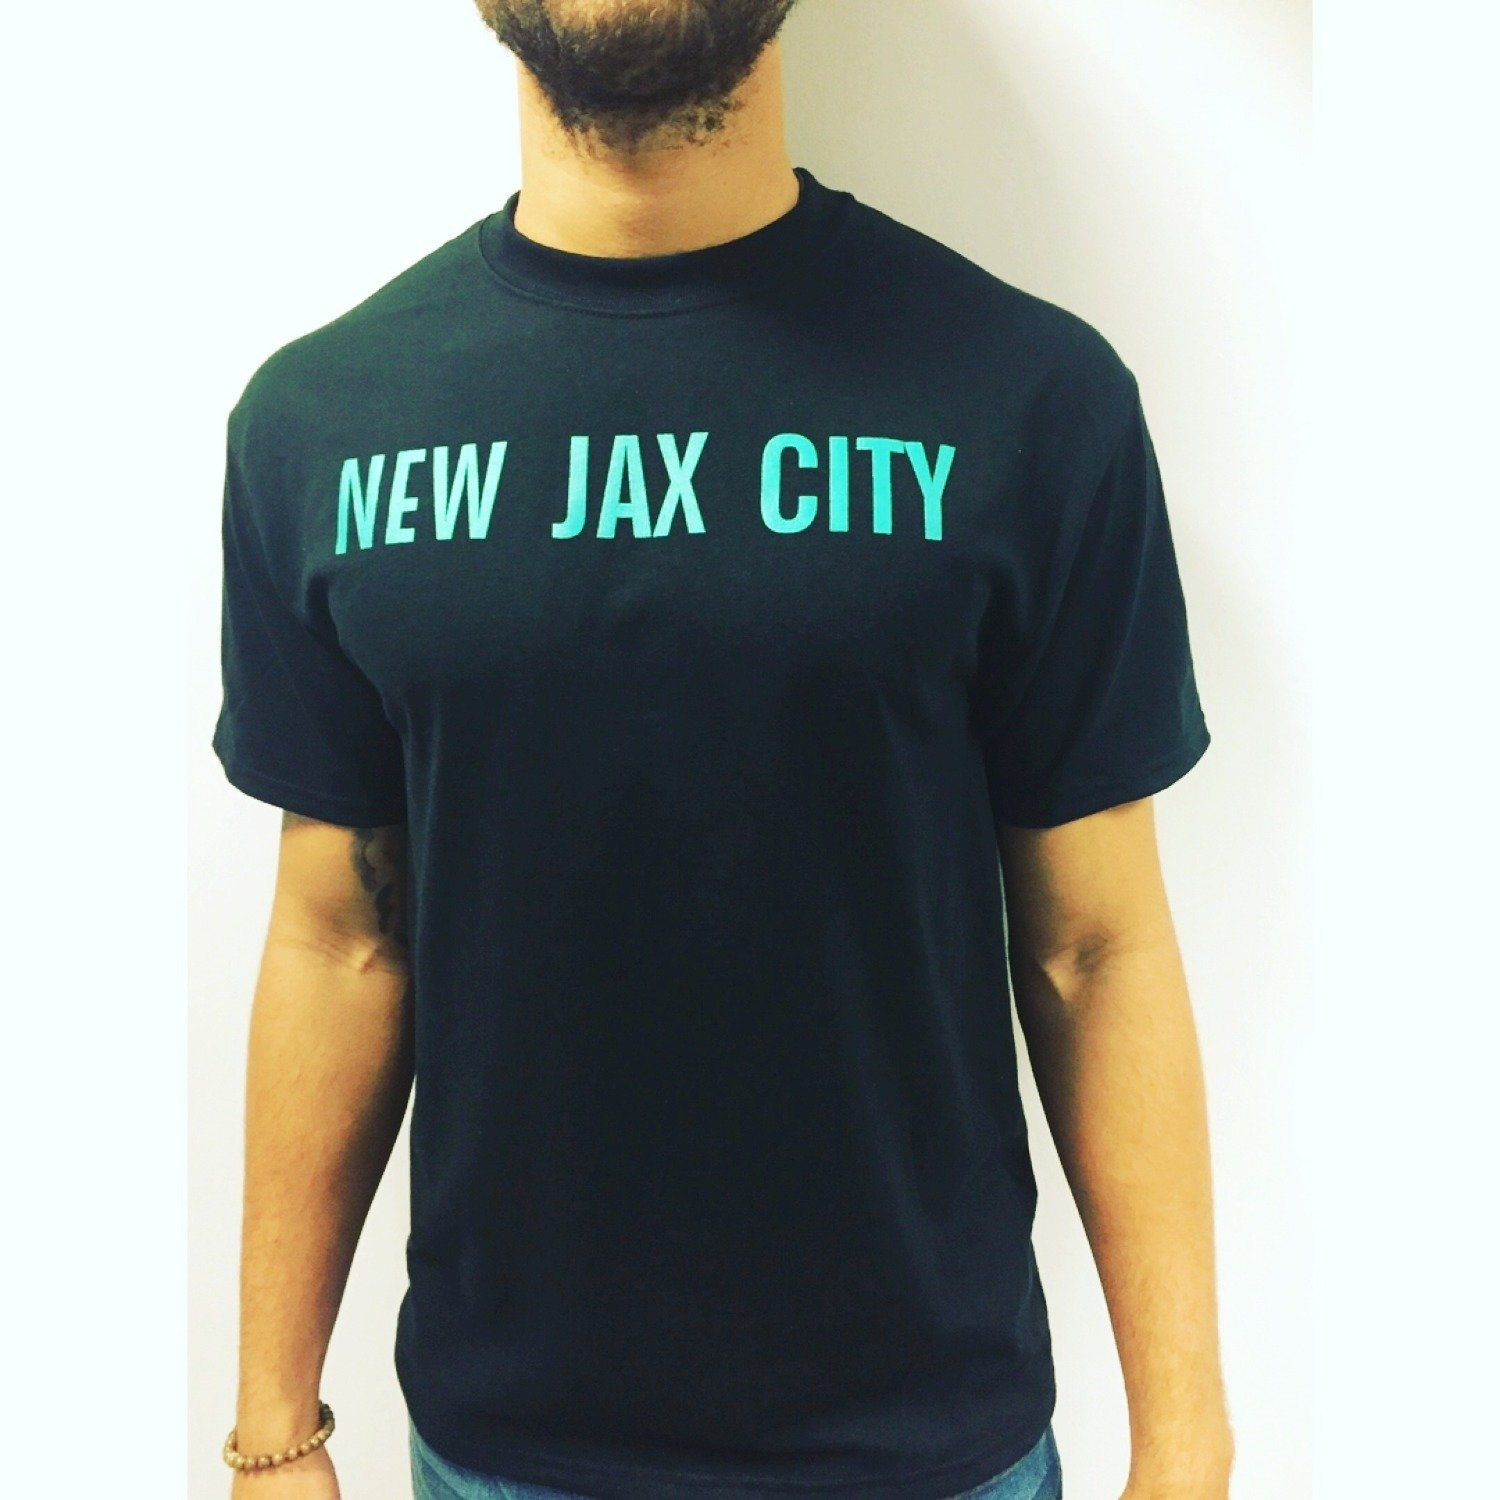 New Jax City - Tshirt (Black)